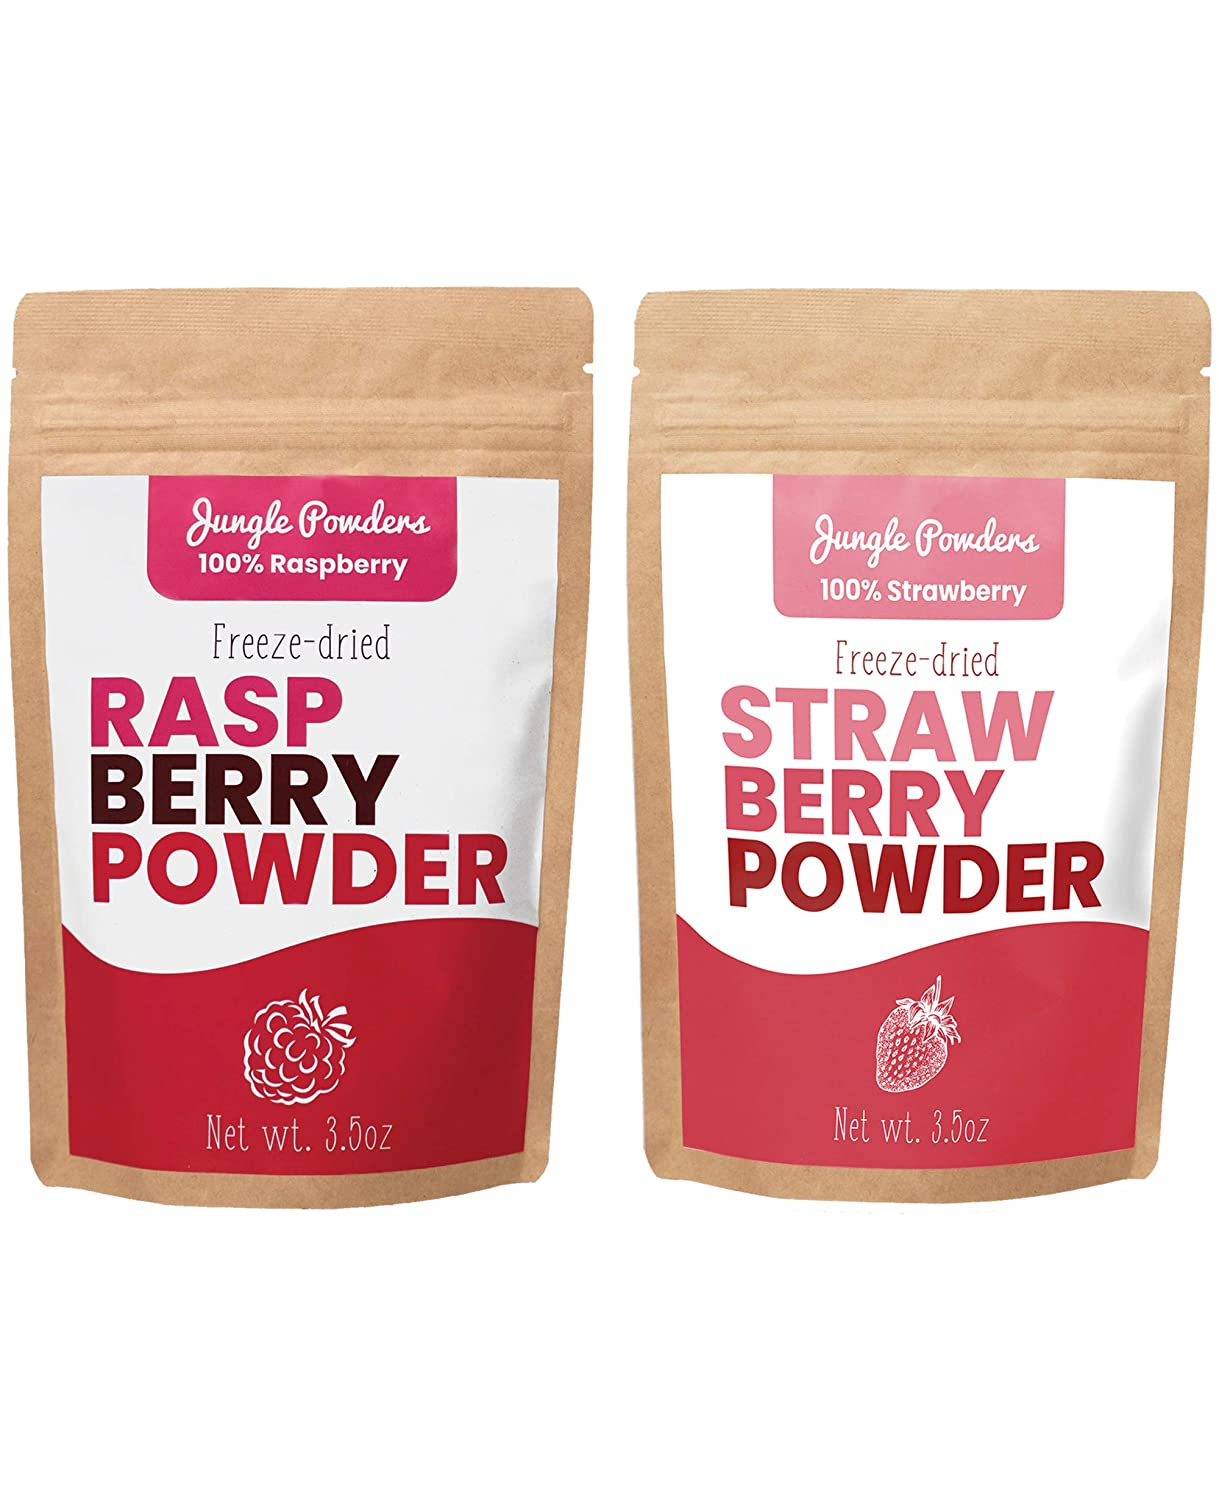 Jungle Powders Raspberry And Strawberry Powder Bundle | 3.5oz 100% Natural Non GMO Vegan Friendly Pink Freeze Dried Raspberry and Strawberry Powder | Red Berry Superfood Concentrate